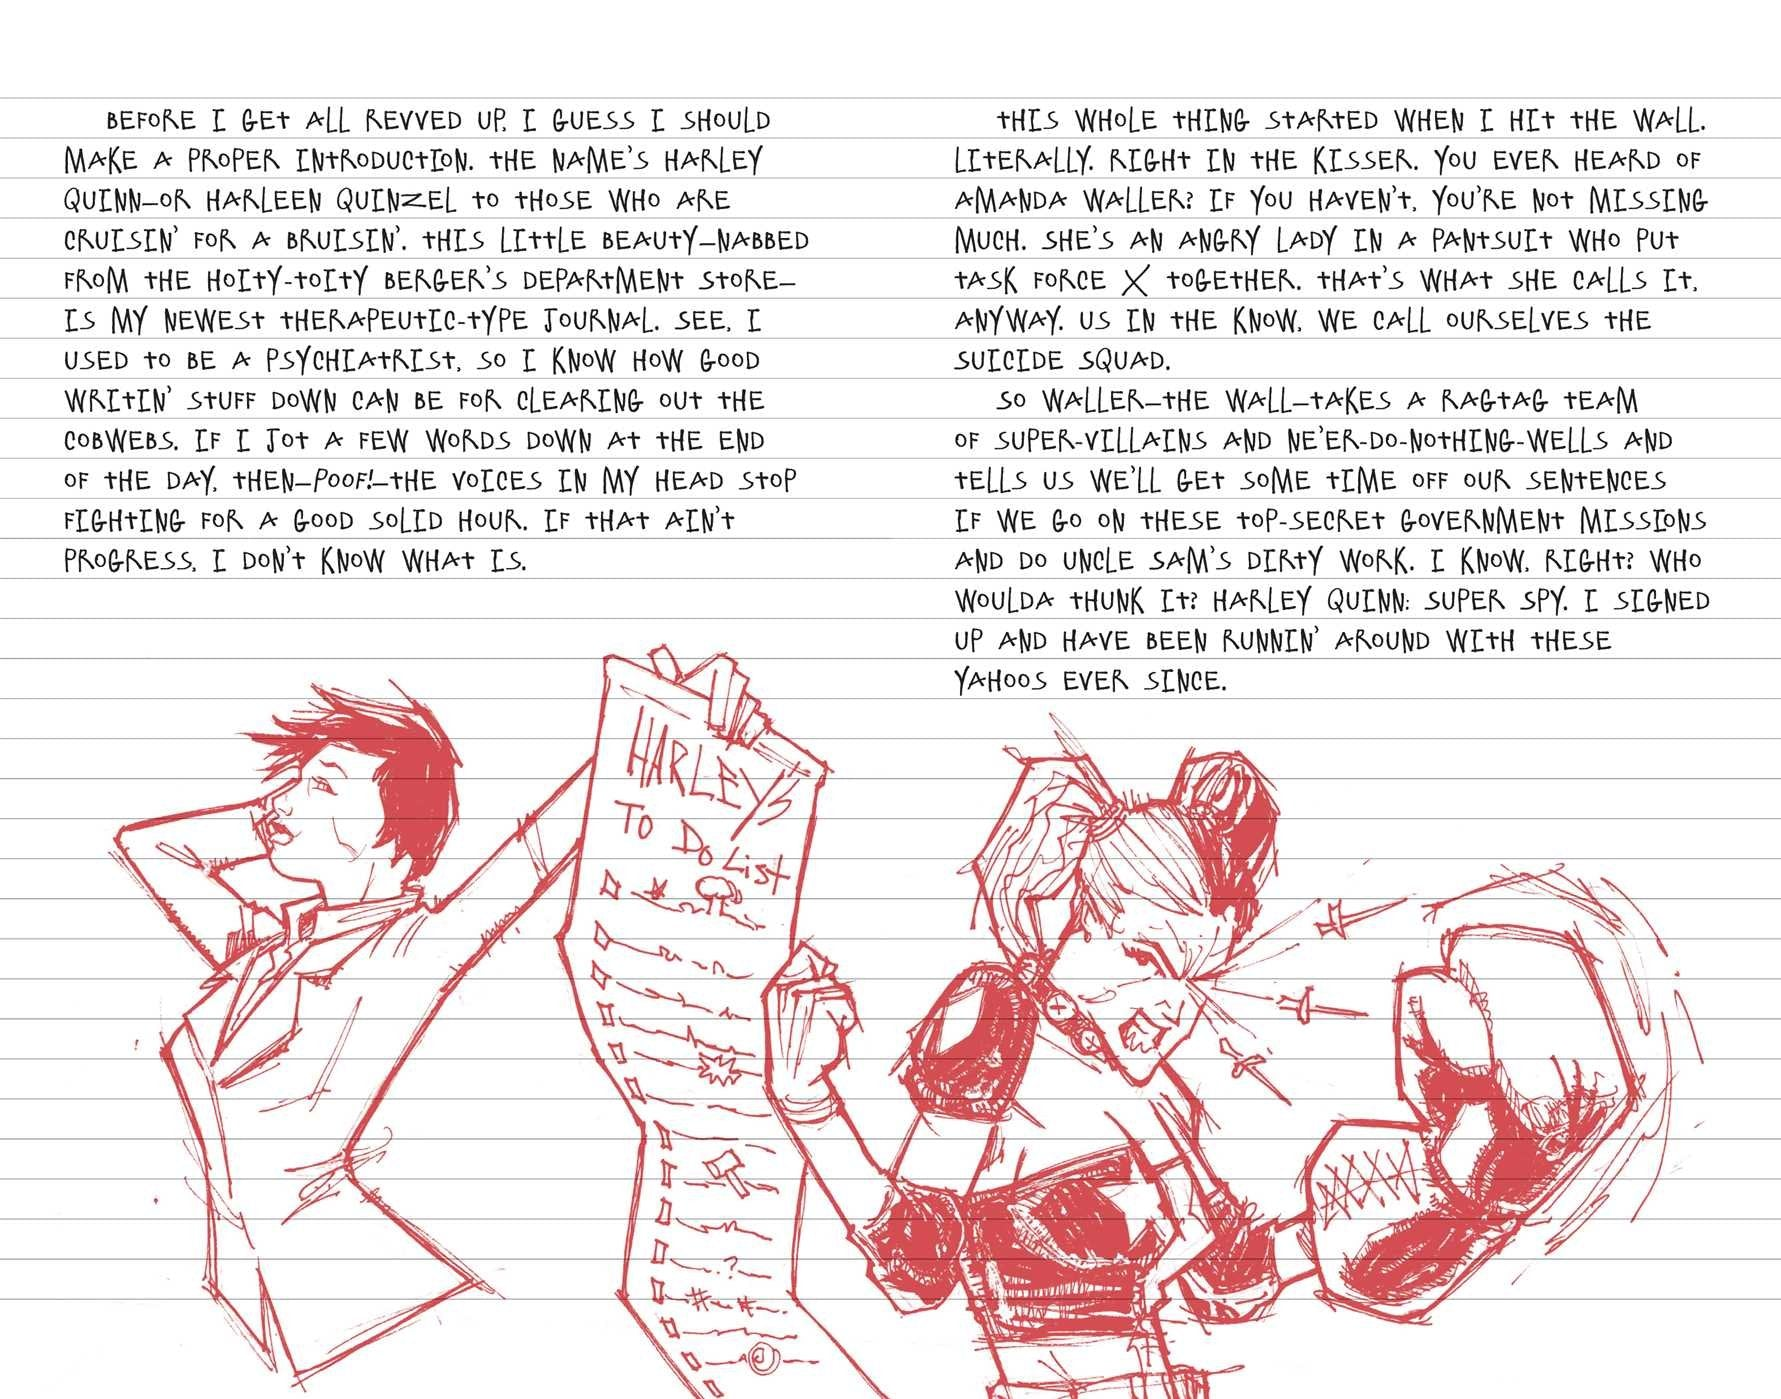 Harley Quinn Journal